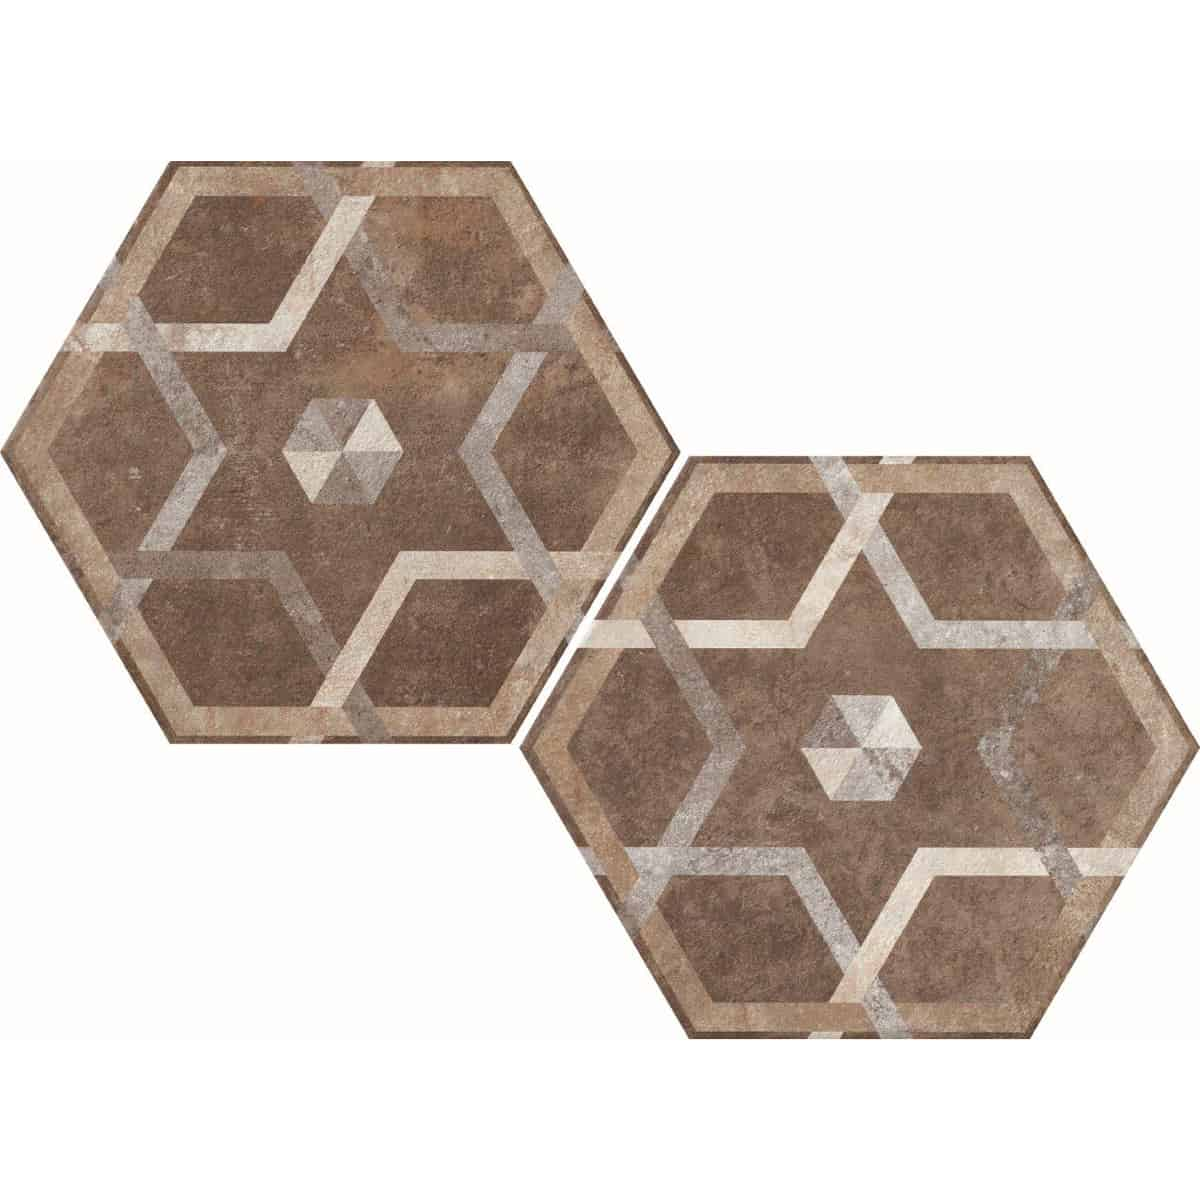 large format pattern hexagon tile 345x400mm Deco Heritage texture 5 by Decobella tiles - South Africa Big format porcelain tiles from Italy and with up to 100 shades, this tile is ideal when considering a pattern hex tile with an authentic feel.Enjoy the quility of porcelain with great anti-slip properties but the look of clay or cement.